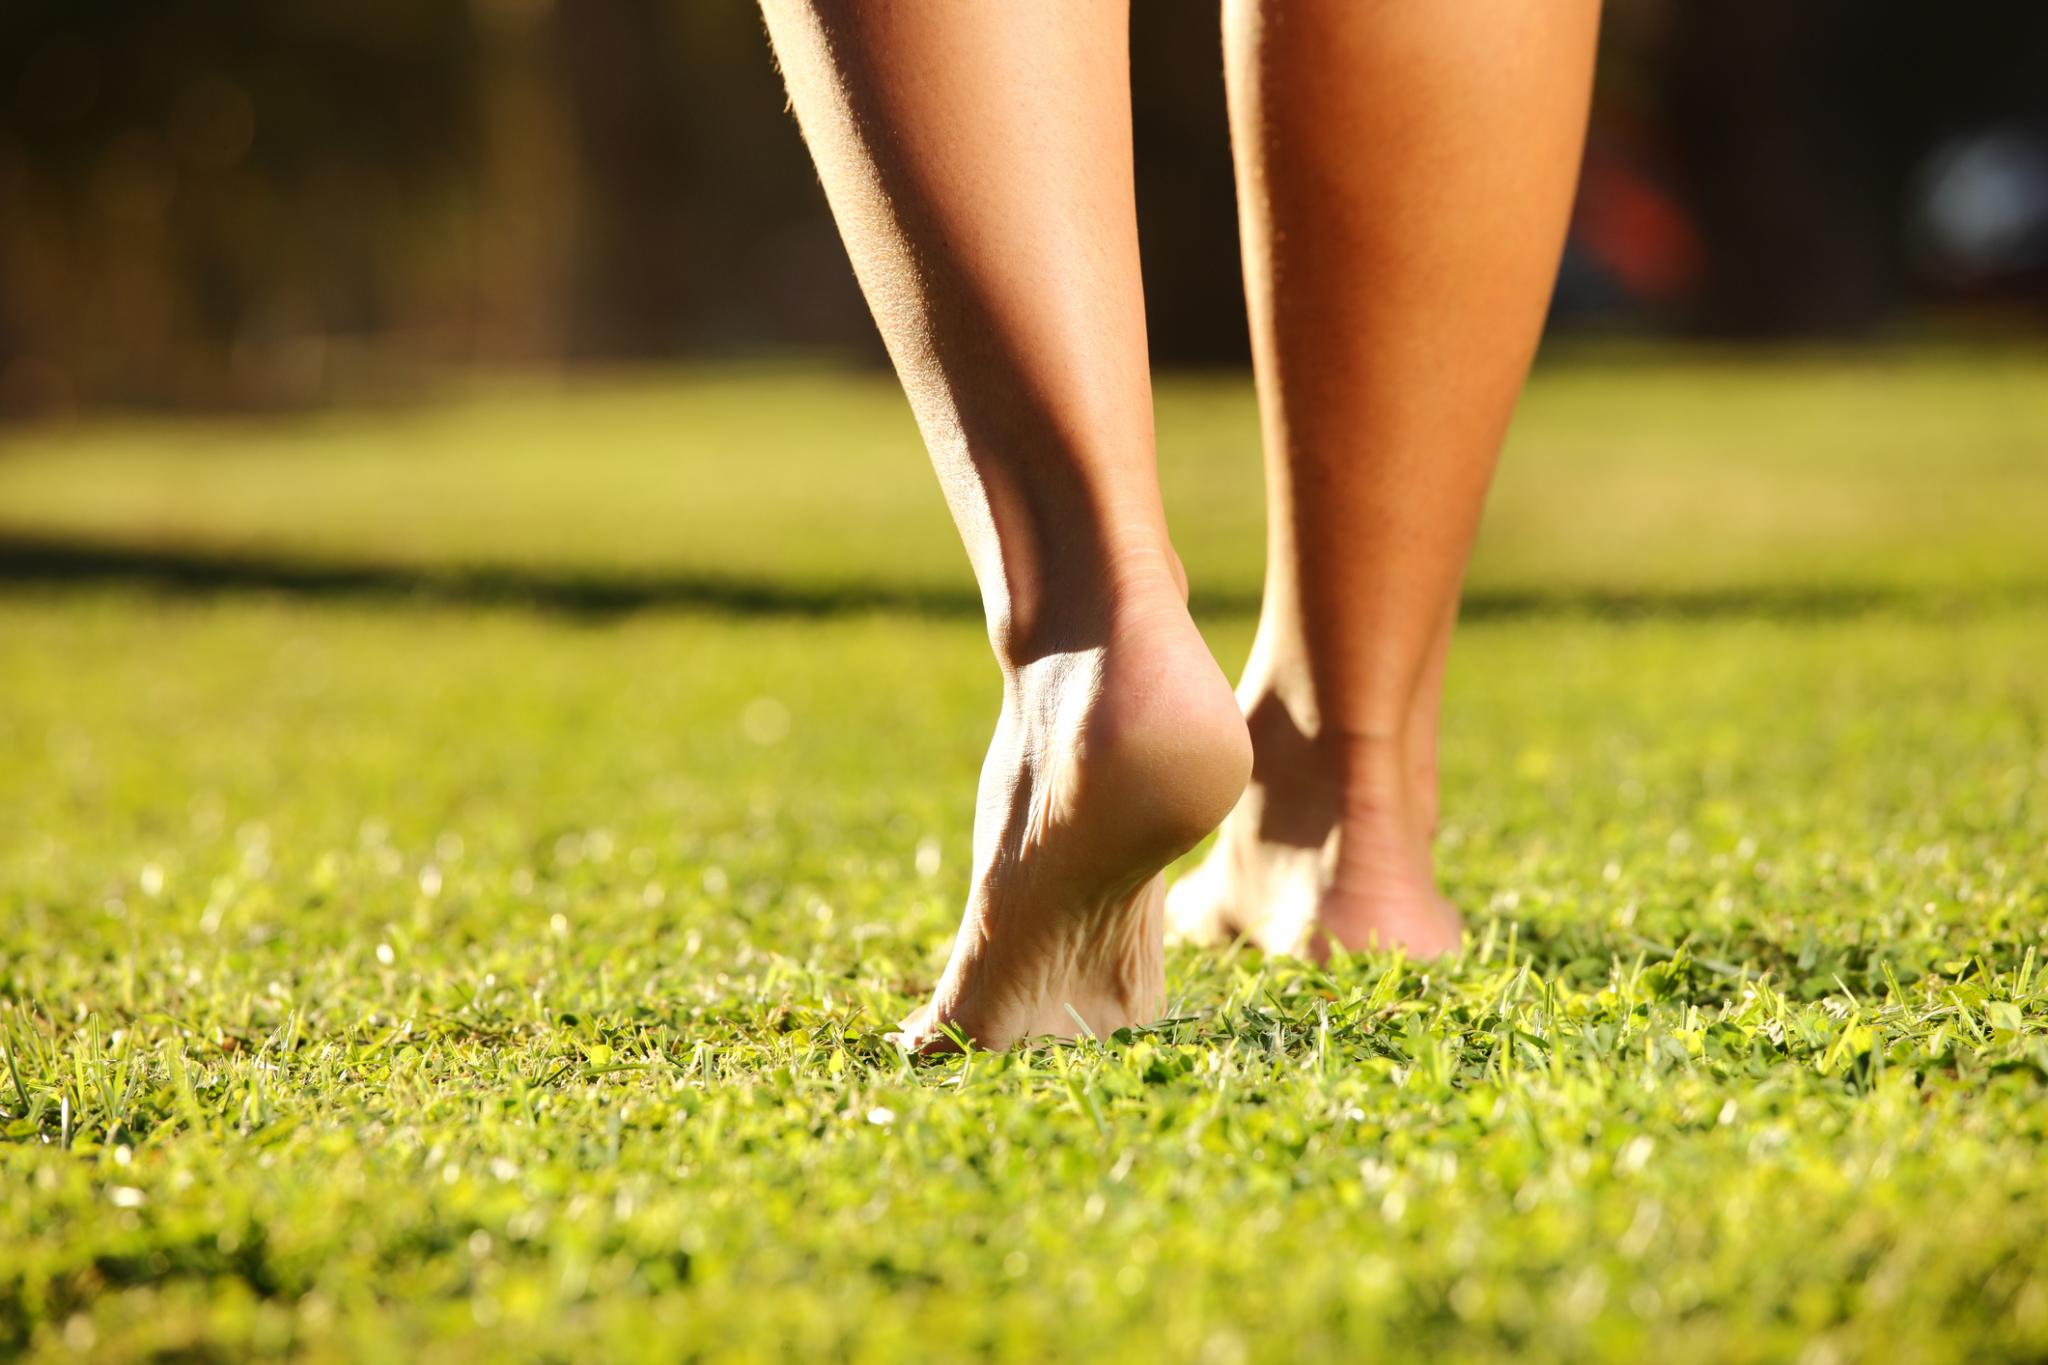 Lady walking barefoot on grass